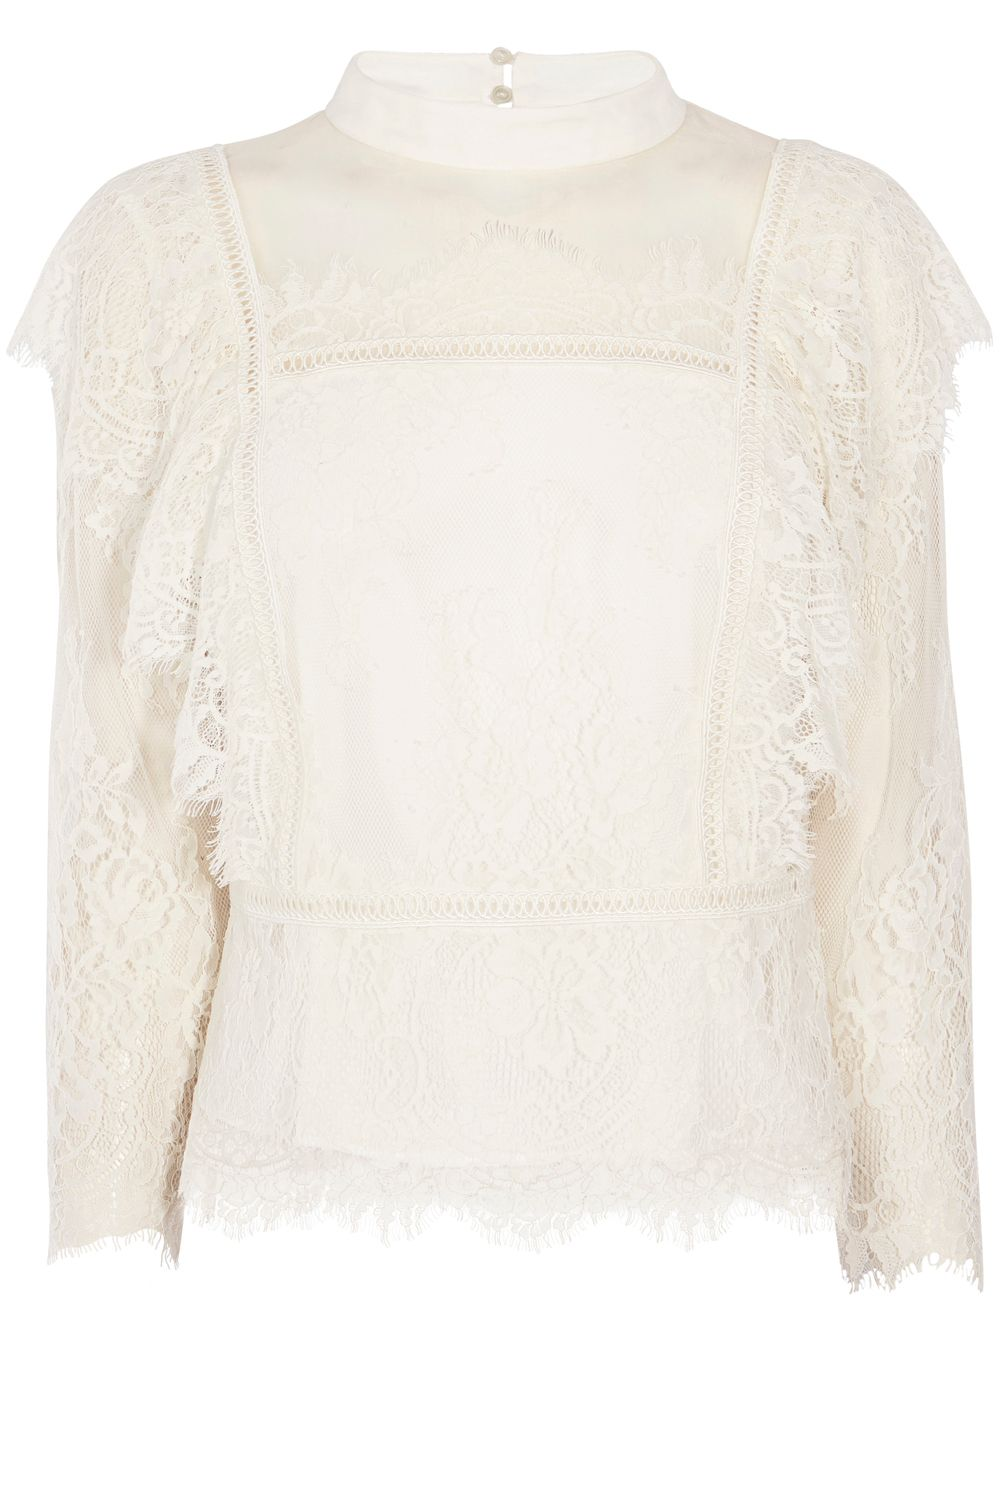 Victorian Blouses, Tops, Shirts, Vests Coast Victoriana Lace Blouse White £79.00 AT vintagedancer.com